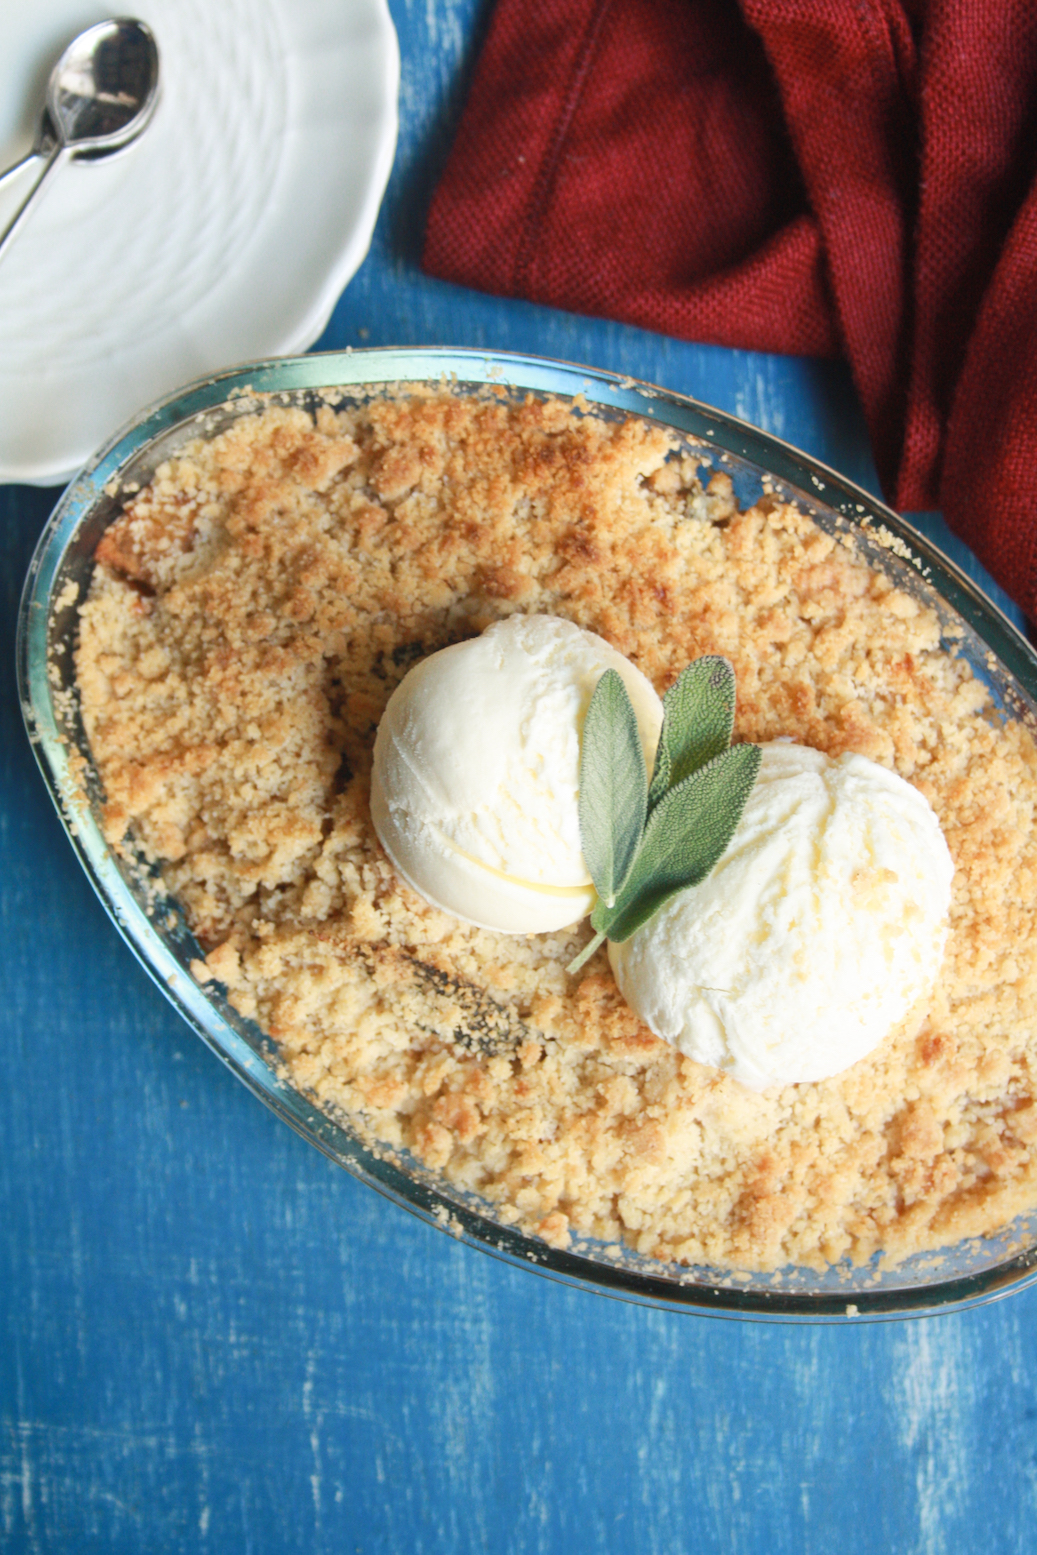 Classic apple crumble taken up a notch with the subtle, floral aroma of fresh sage leaves!